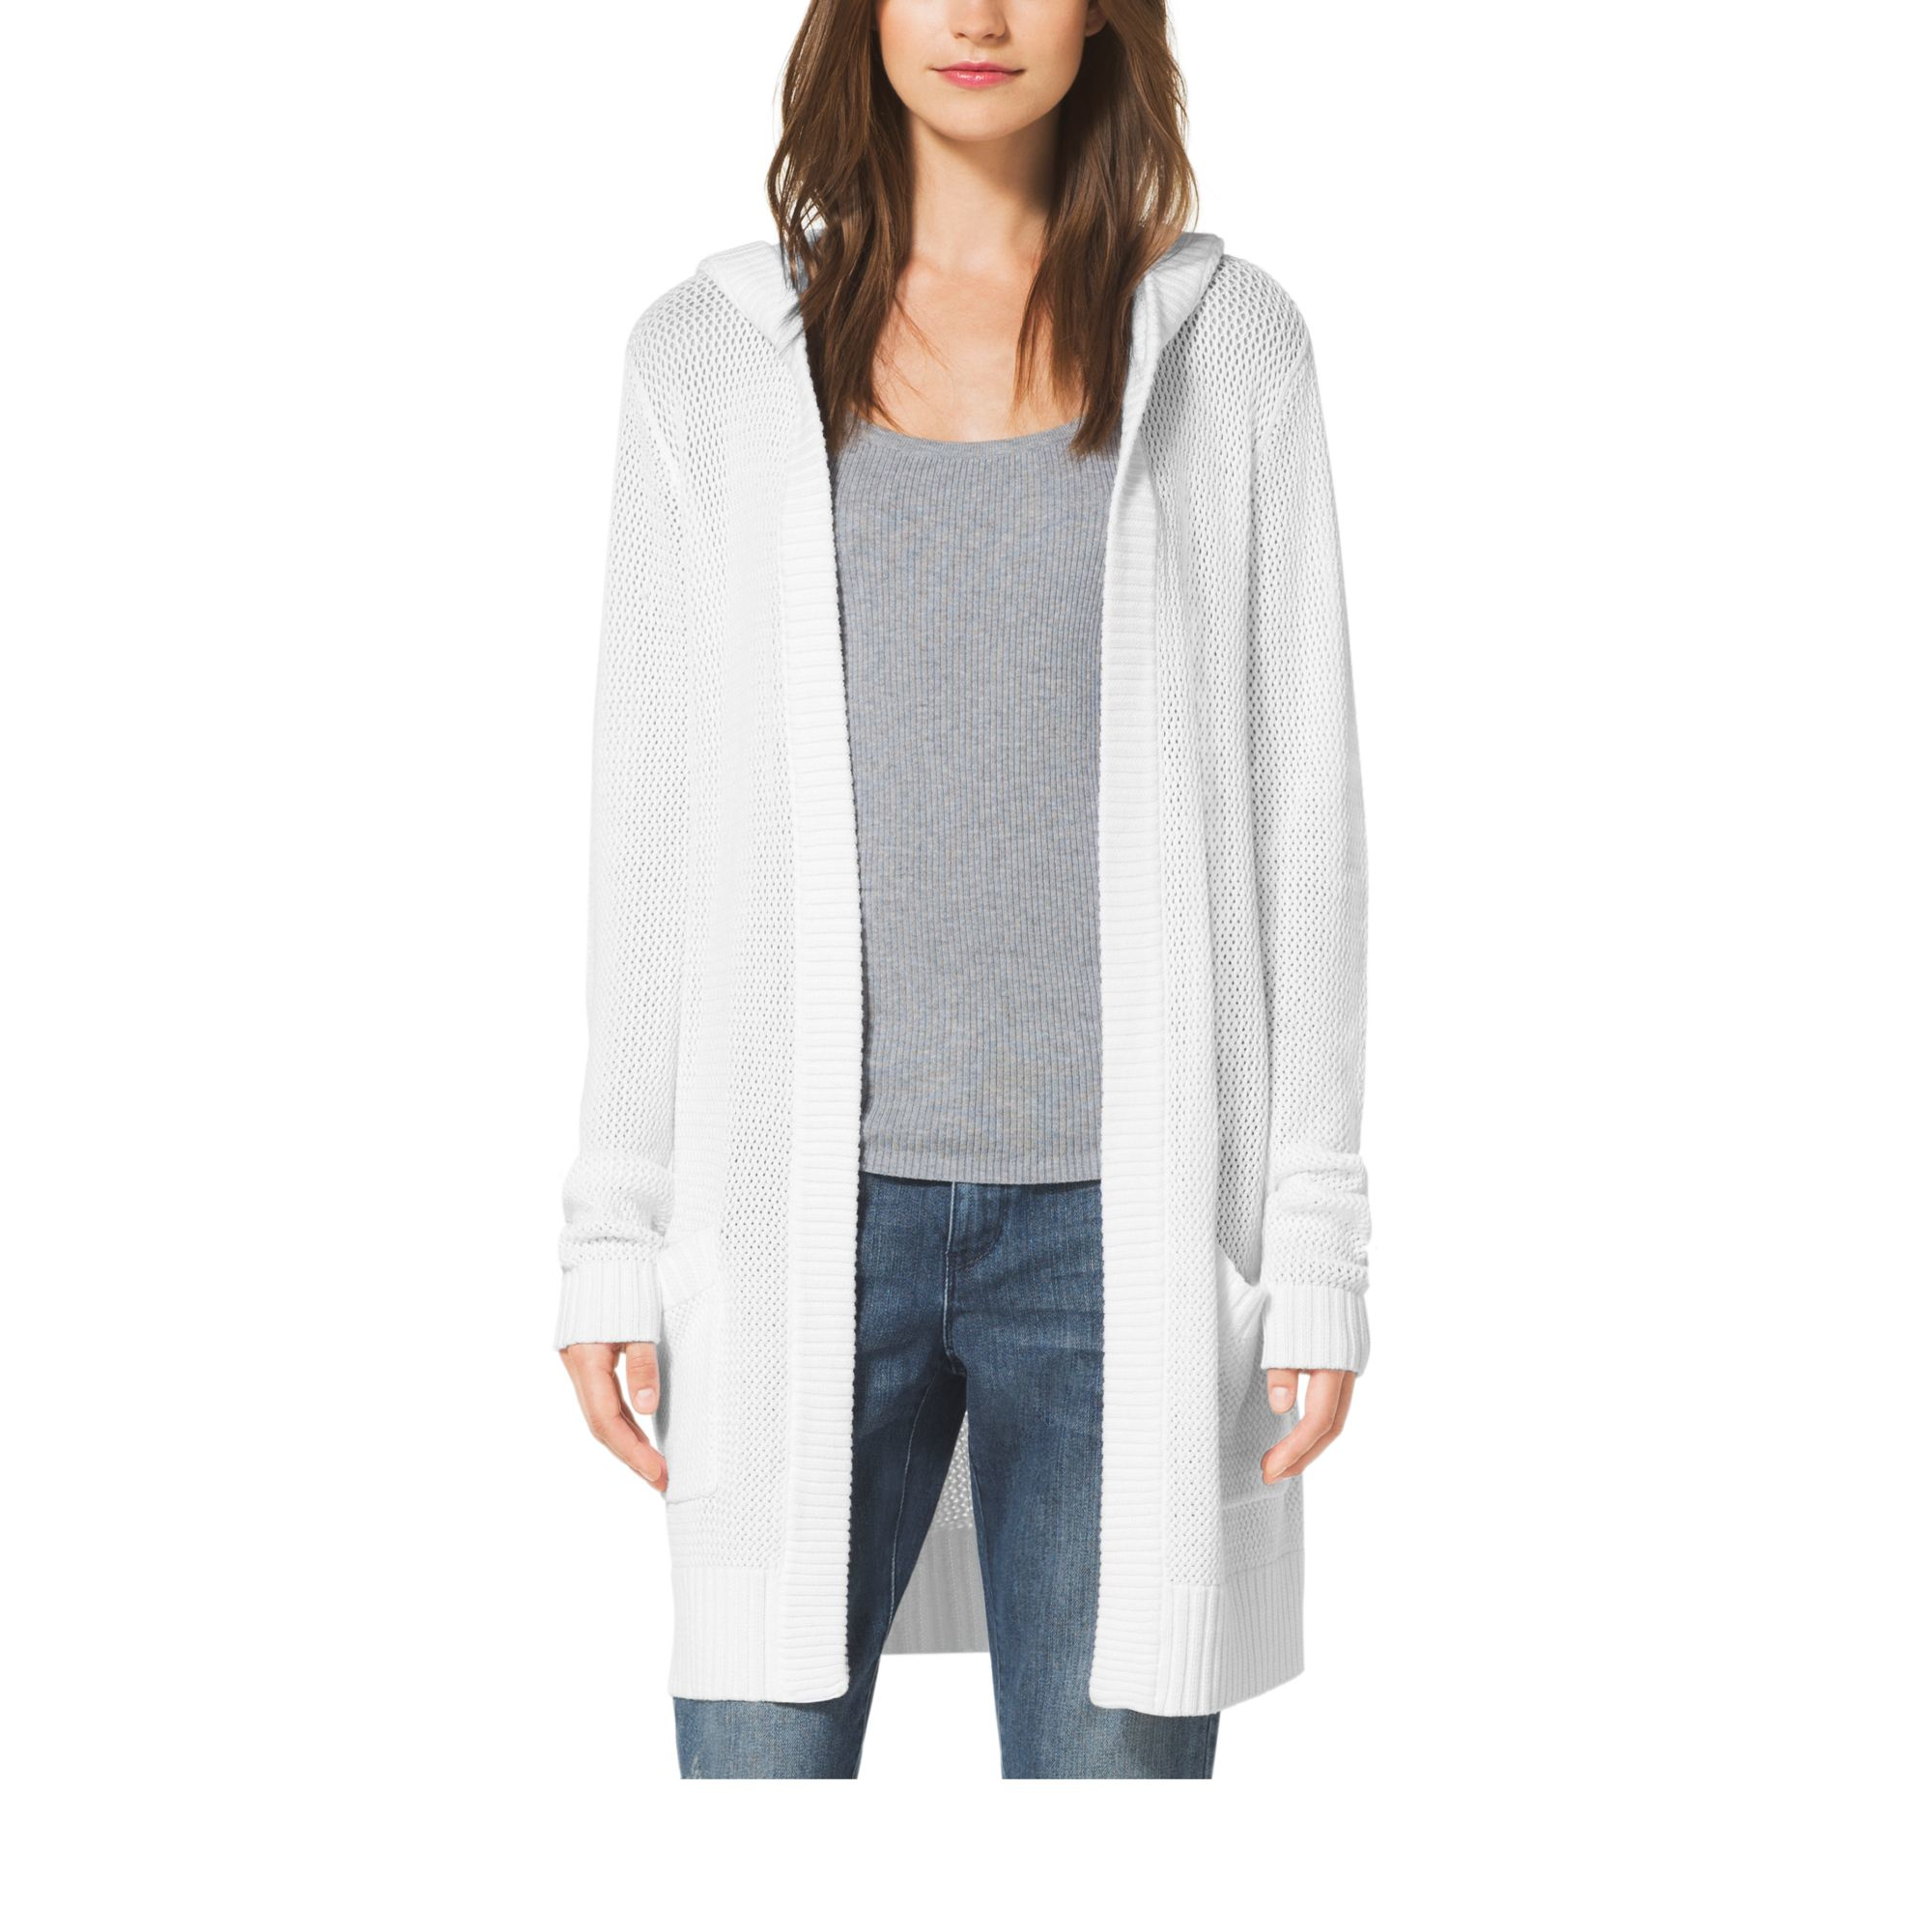 Michael kors Hooded Cotton-blend Cardigan in White | Lyst